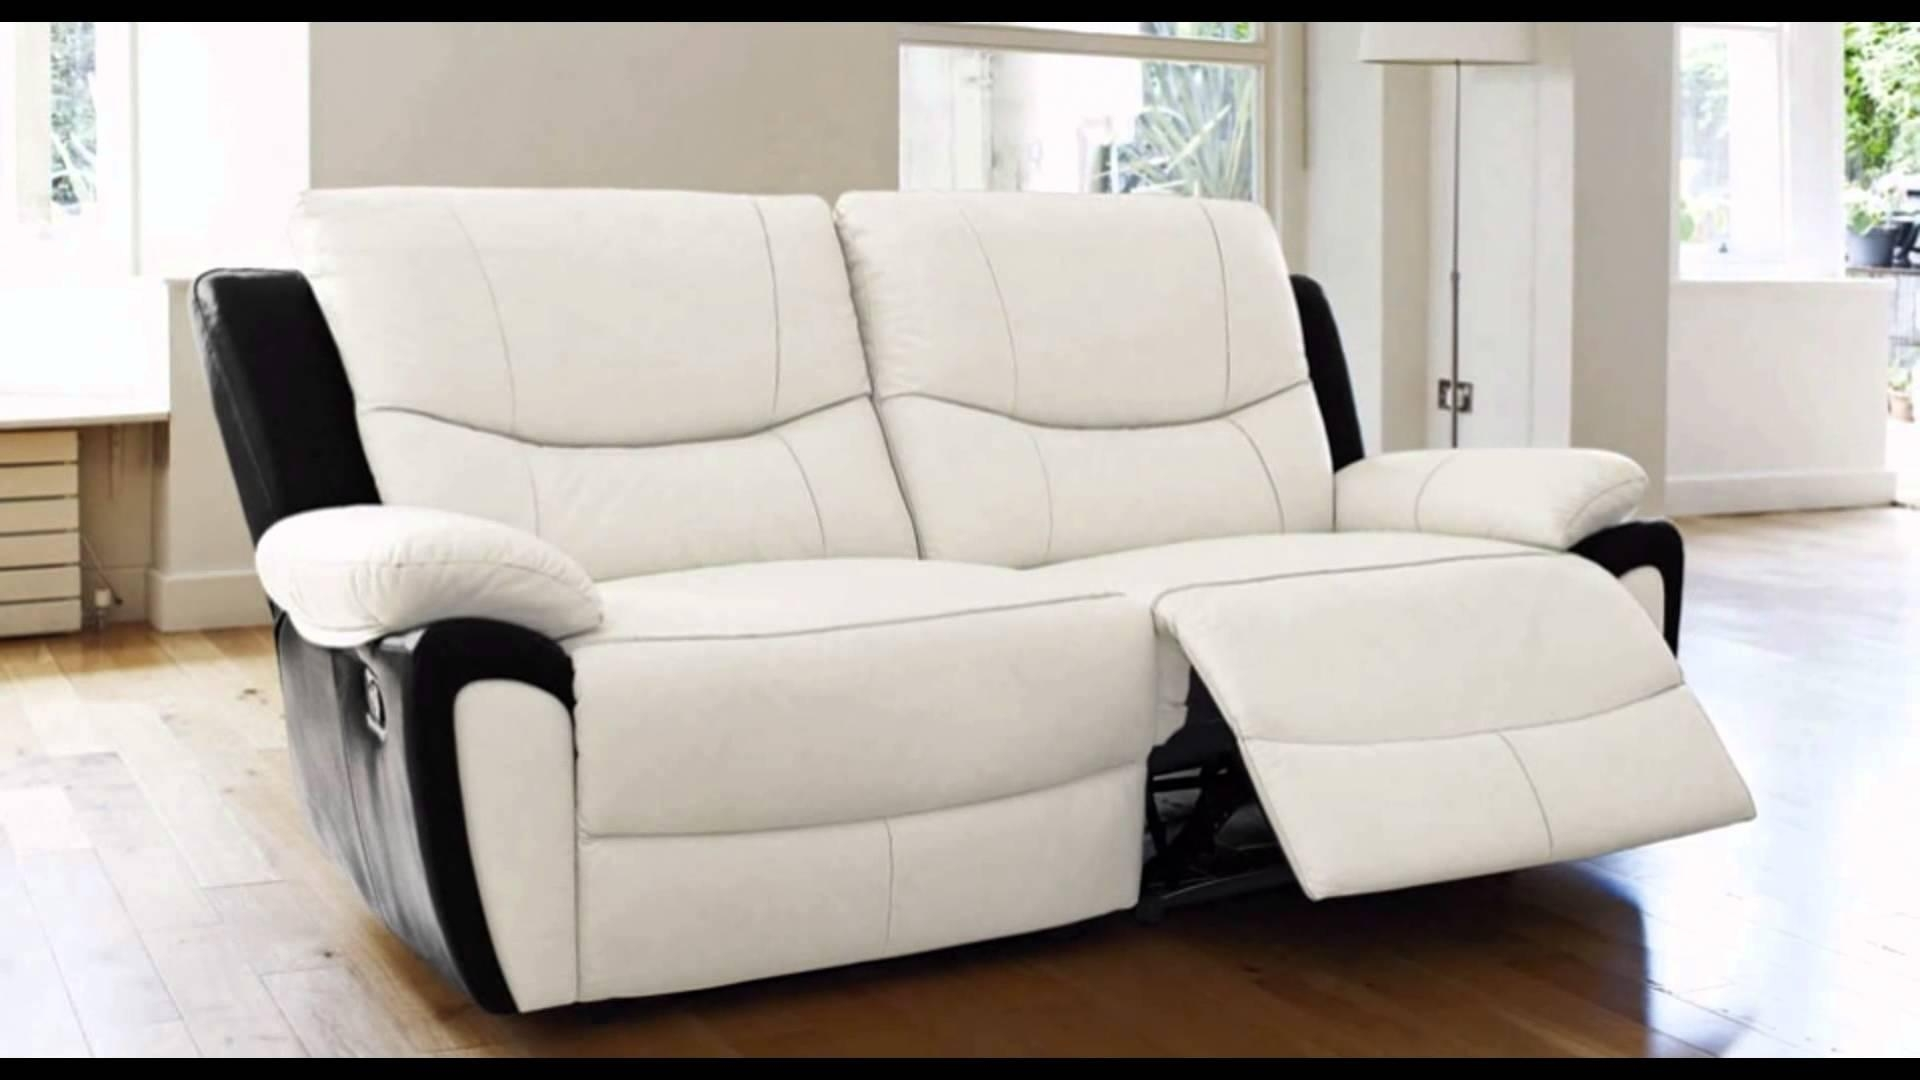 sofa beds for motorhomes can you clean a leather with steam mop 20 43 choices of rv recliner sofas ideas